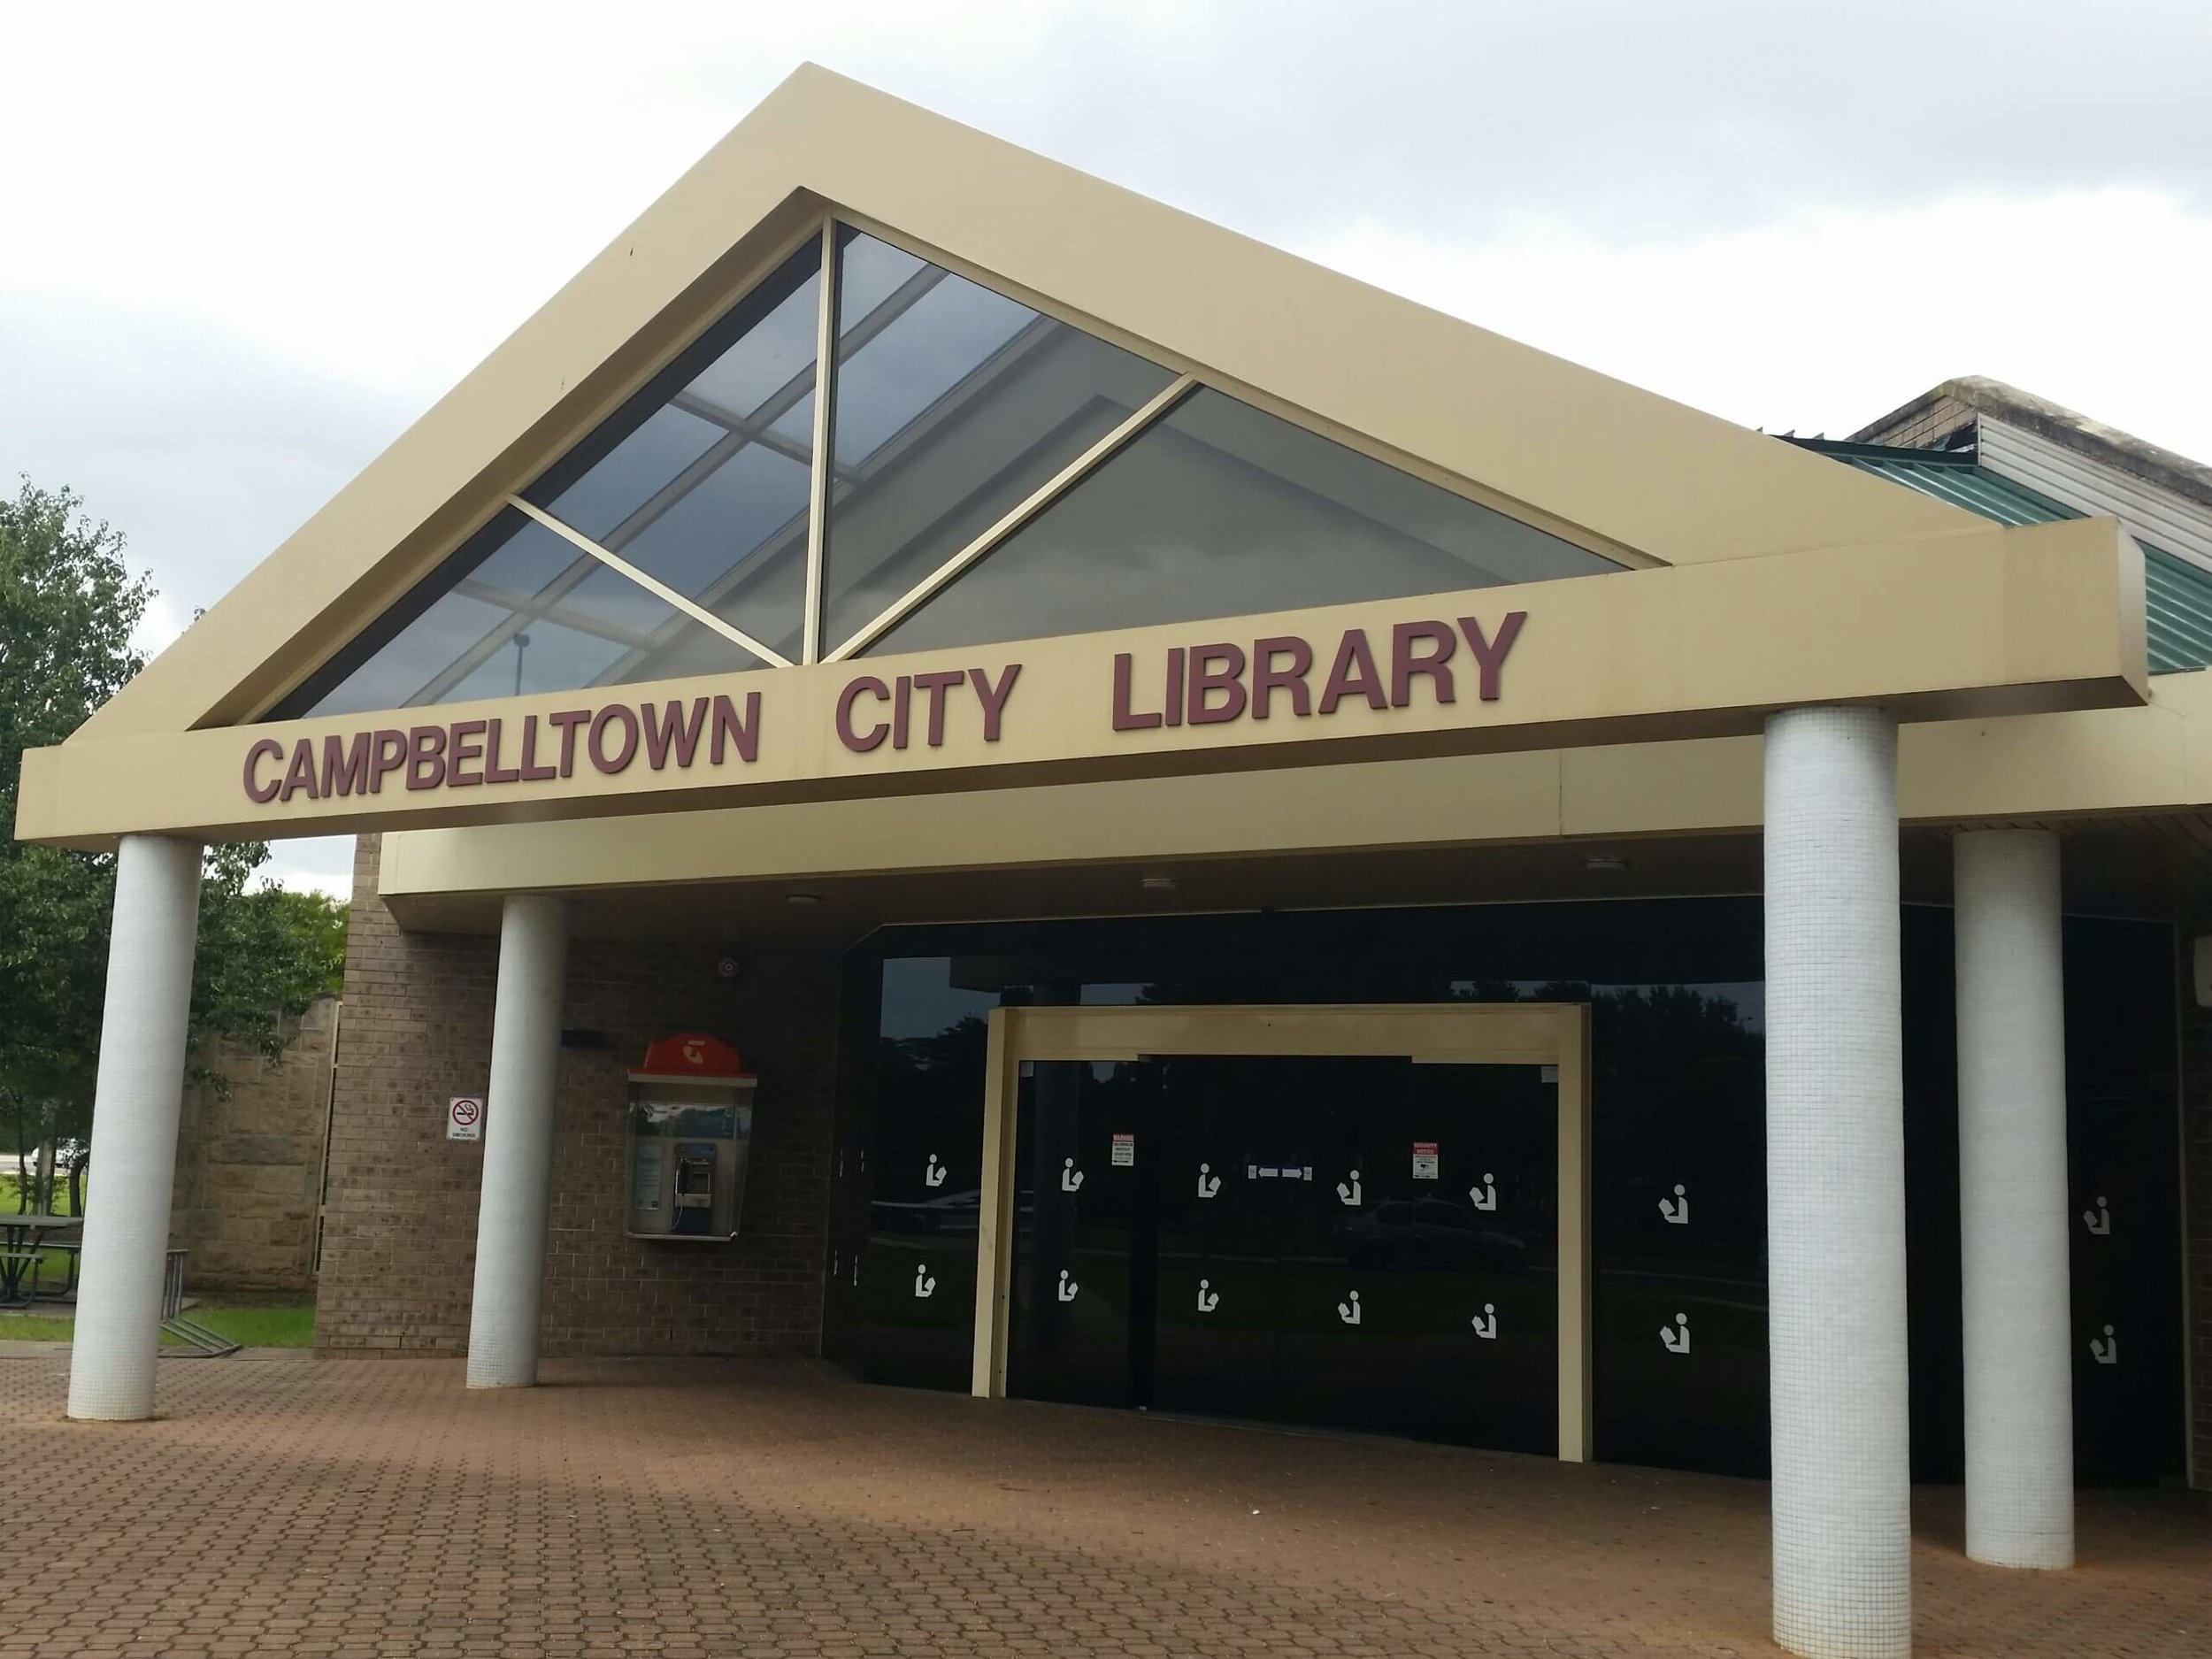 CAMPBELLTOWN COMMUNITY FACILITIES STRATEGY COMMUNITY ENGAGEMENT  City of Campbelltown Council   Cred is working with project leaders  RPS  to deliver community engagement across  ...more